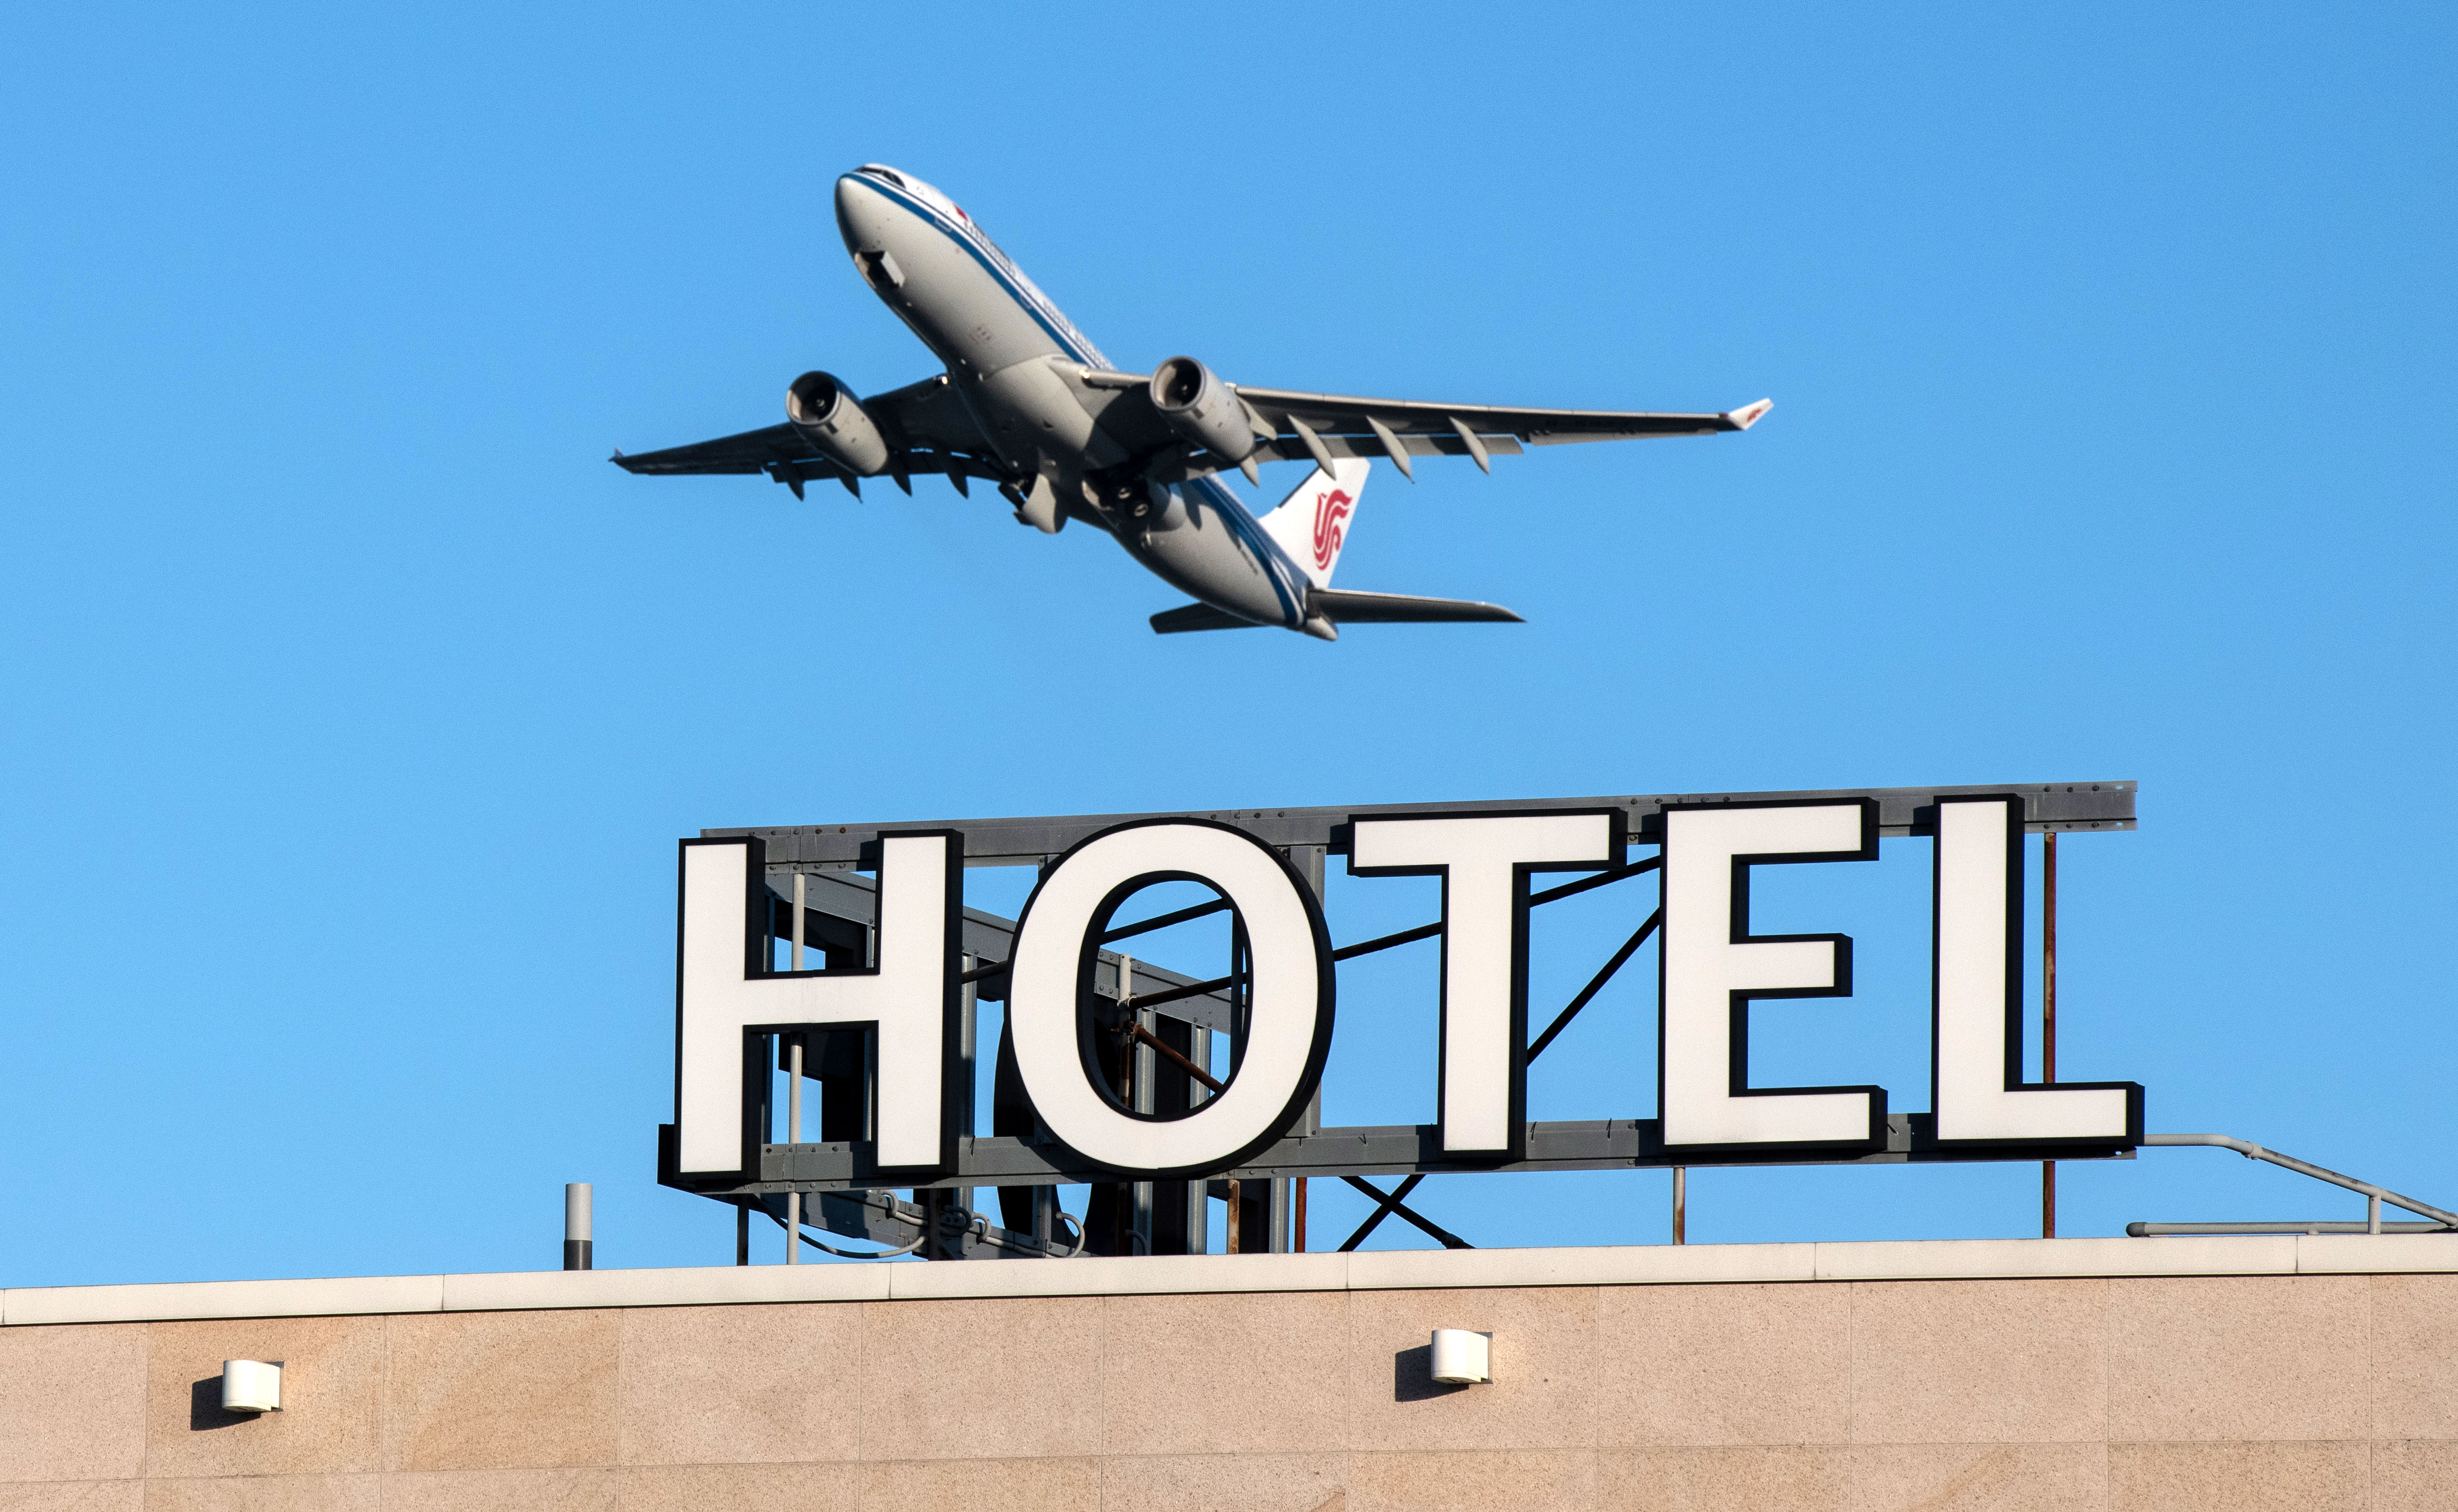 An airplane passes over a hotel as it takes off from Heathrow Airport in London on January 25.